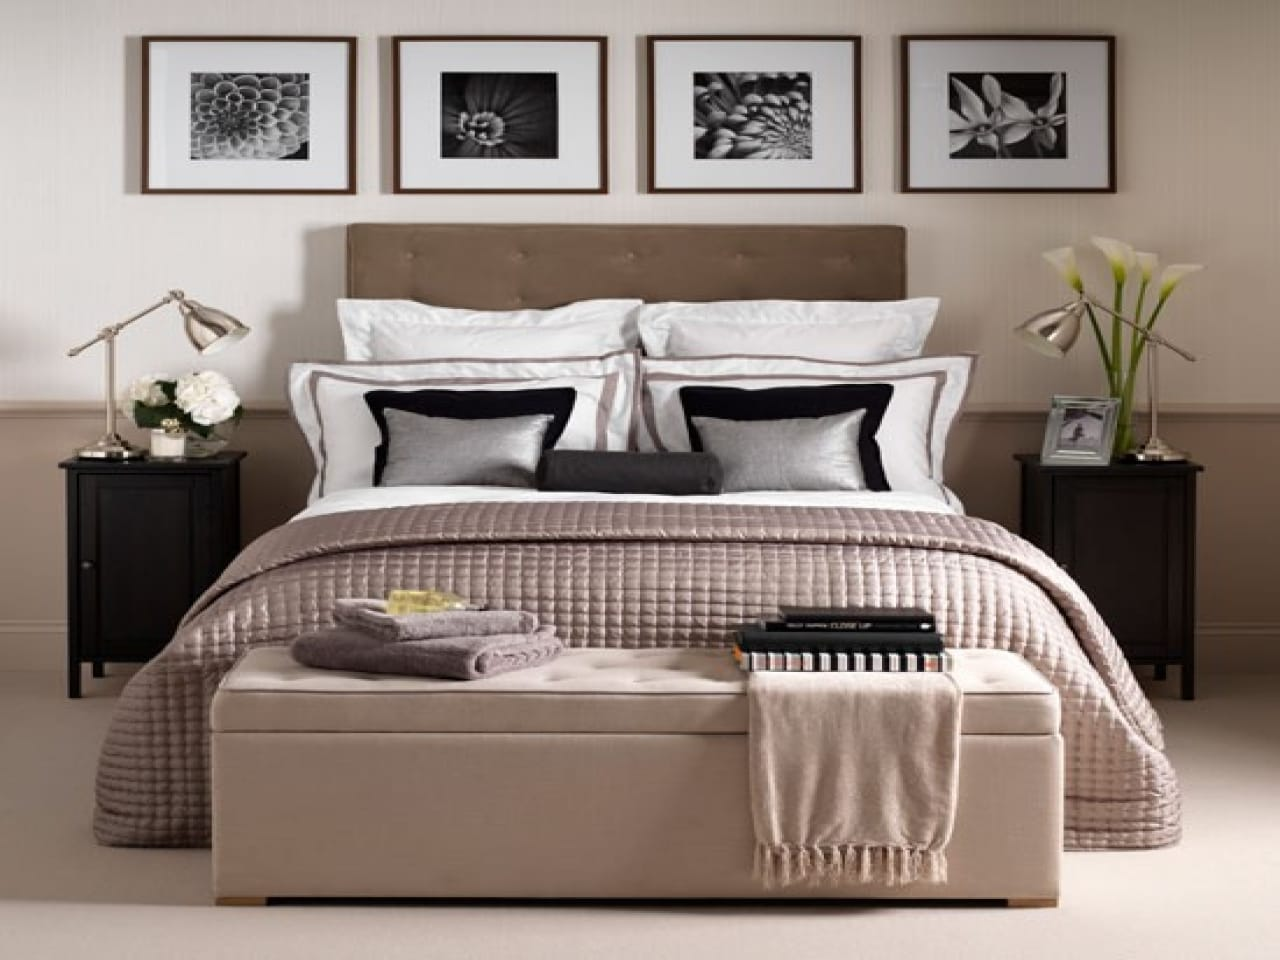 decorating a small bedroom ideas ideas para decorar una habitaci 243 n con estilo colch 243 n expr 233 s 18610